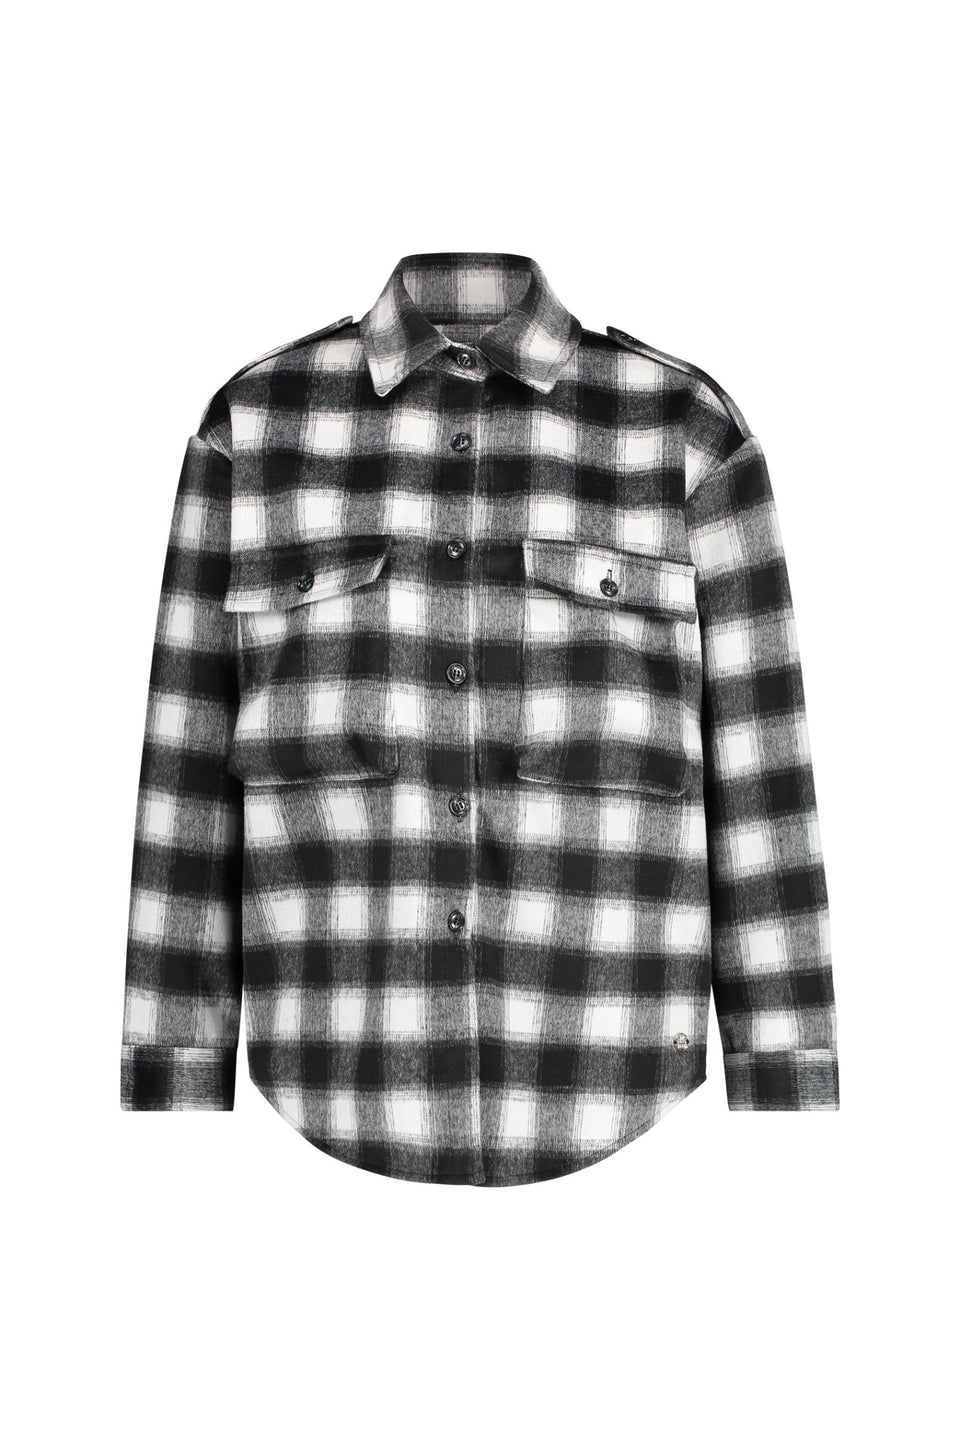 June Jacket - Cream Black Checks